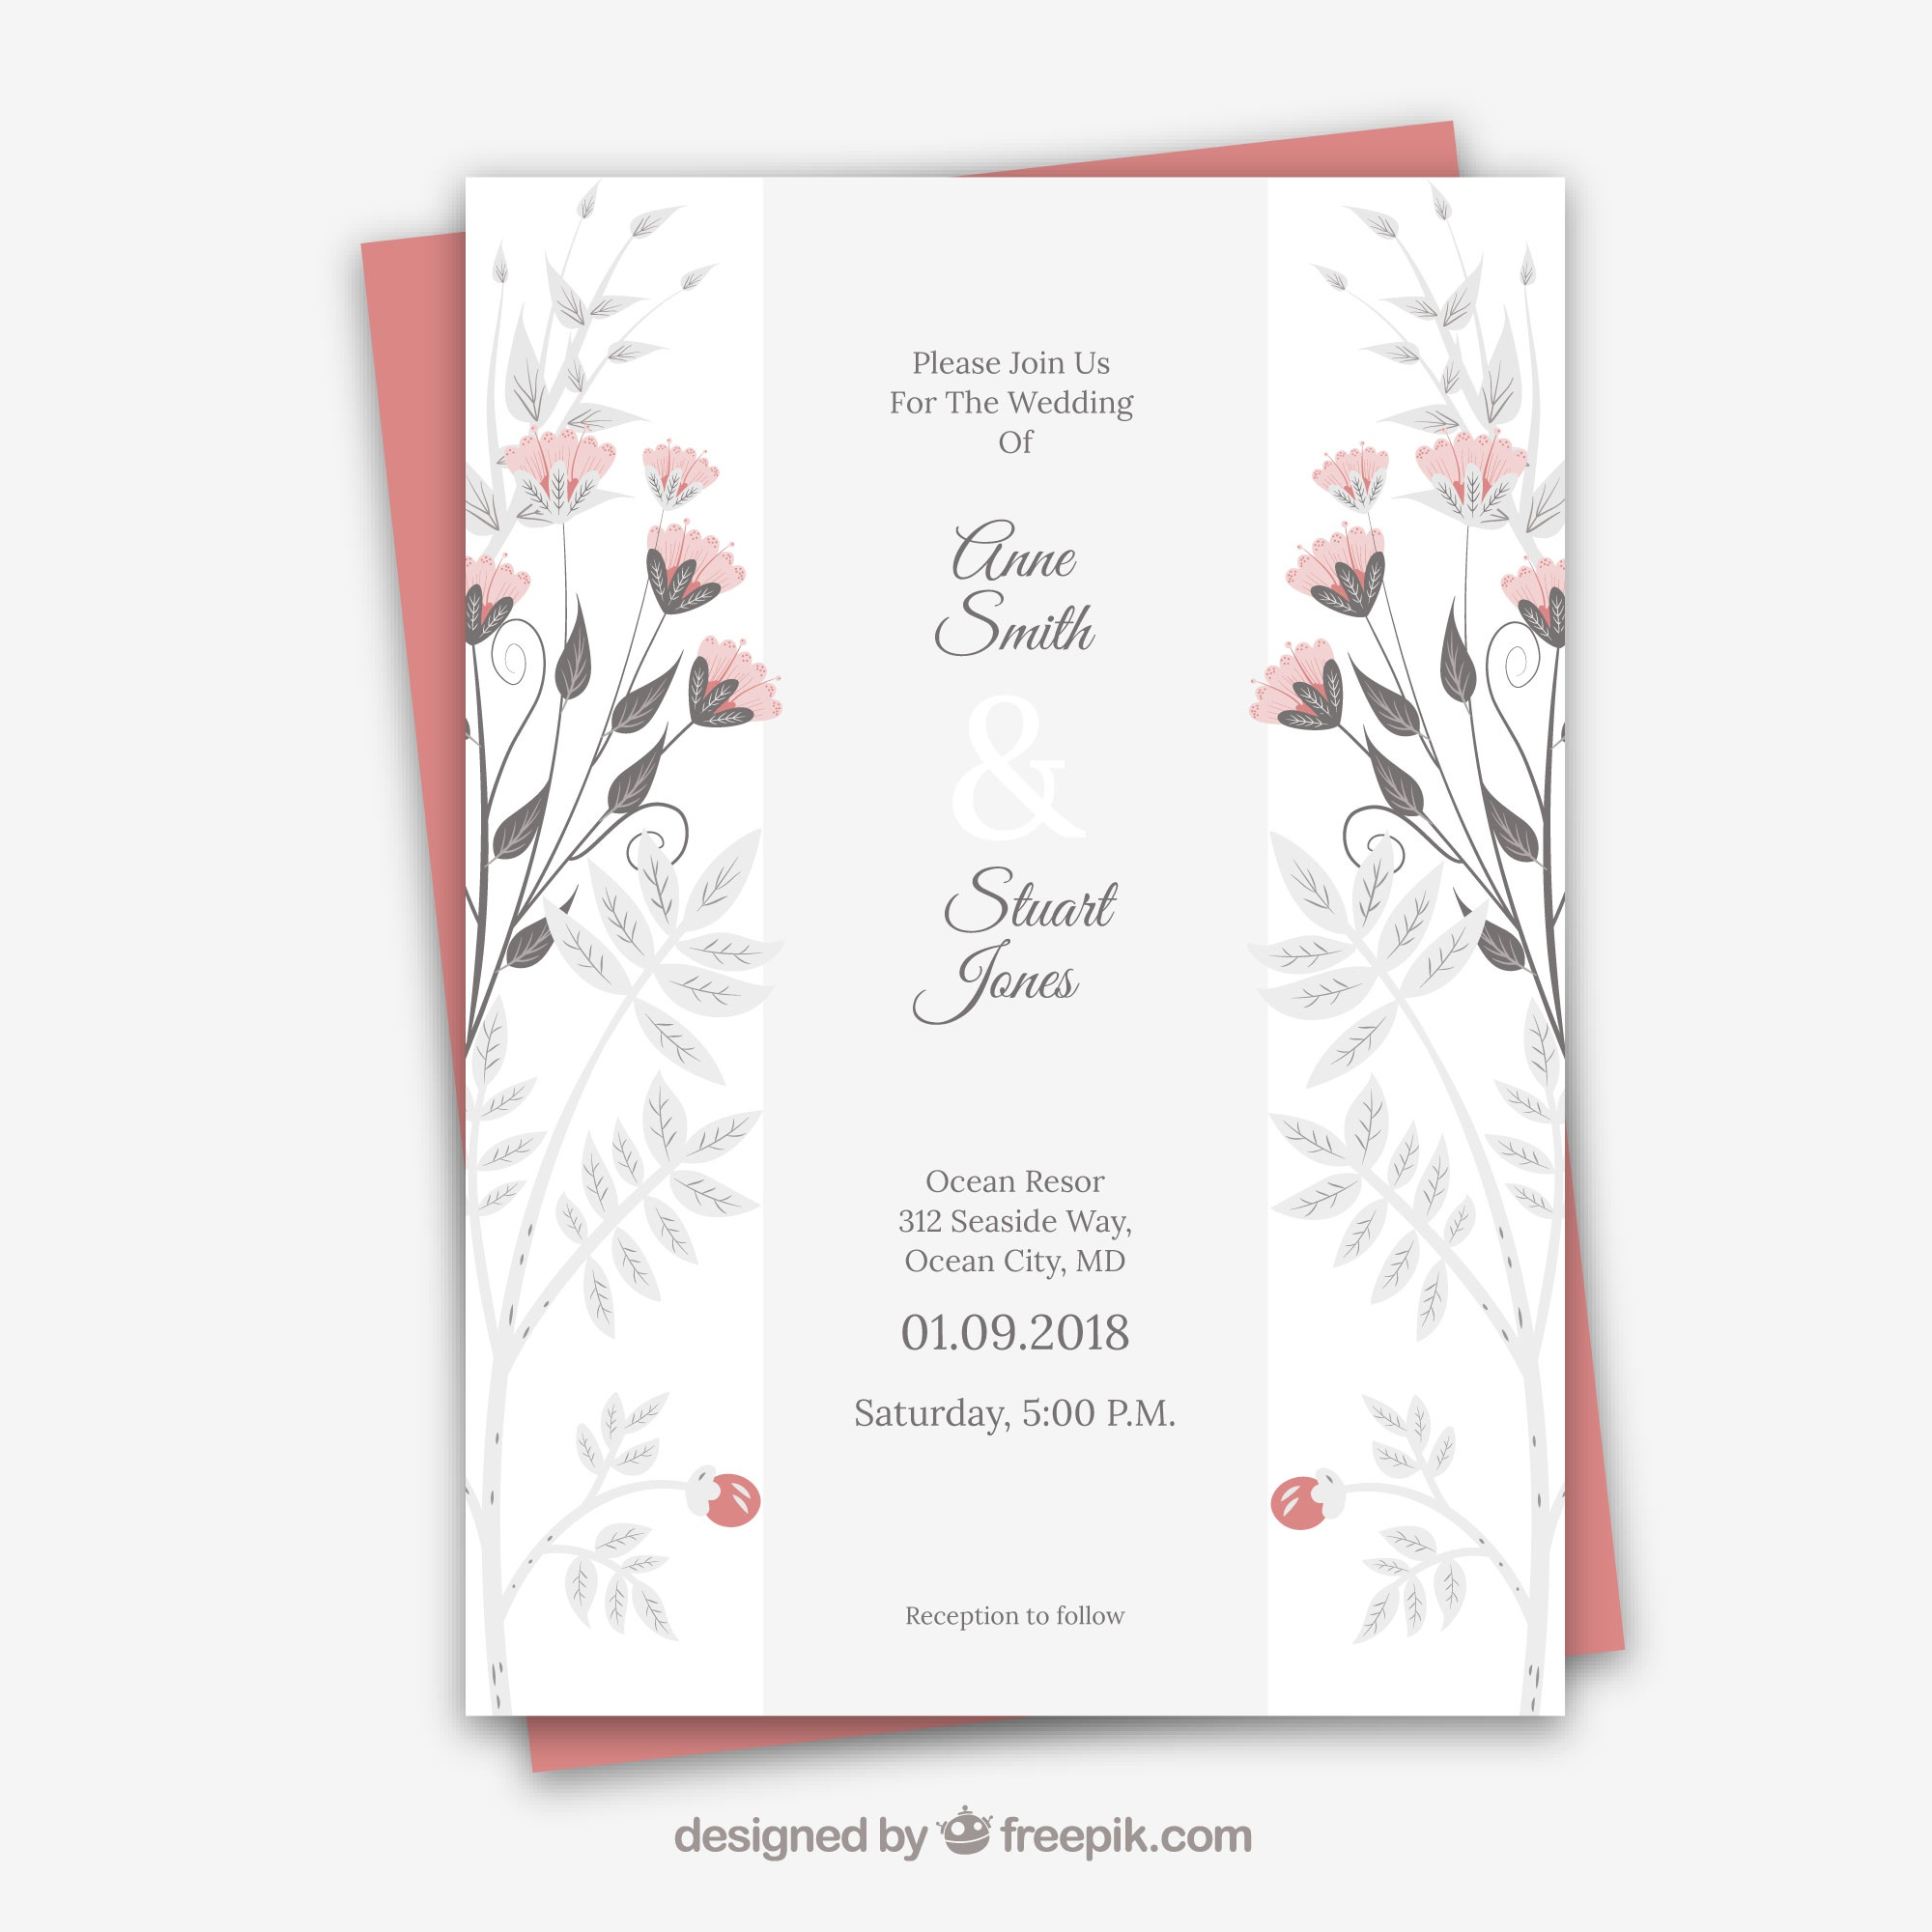 Wedding card with floral ornaments